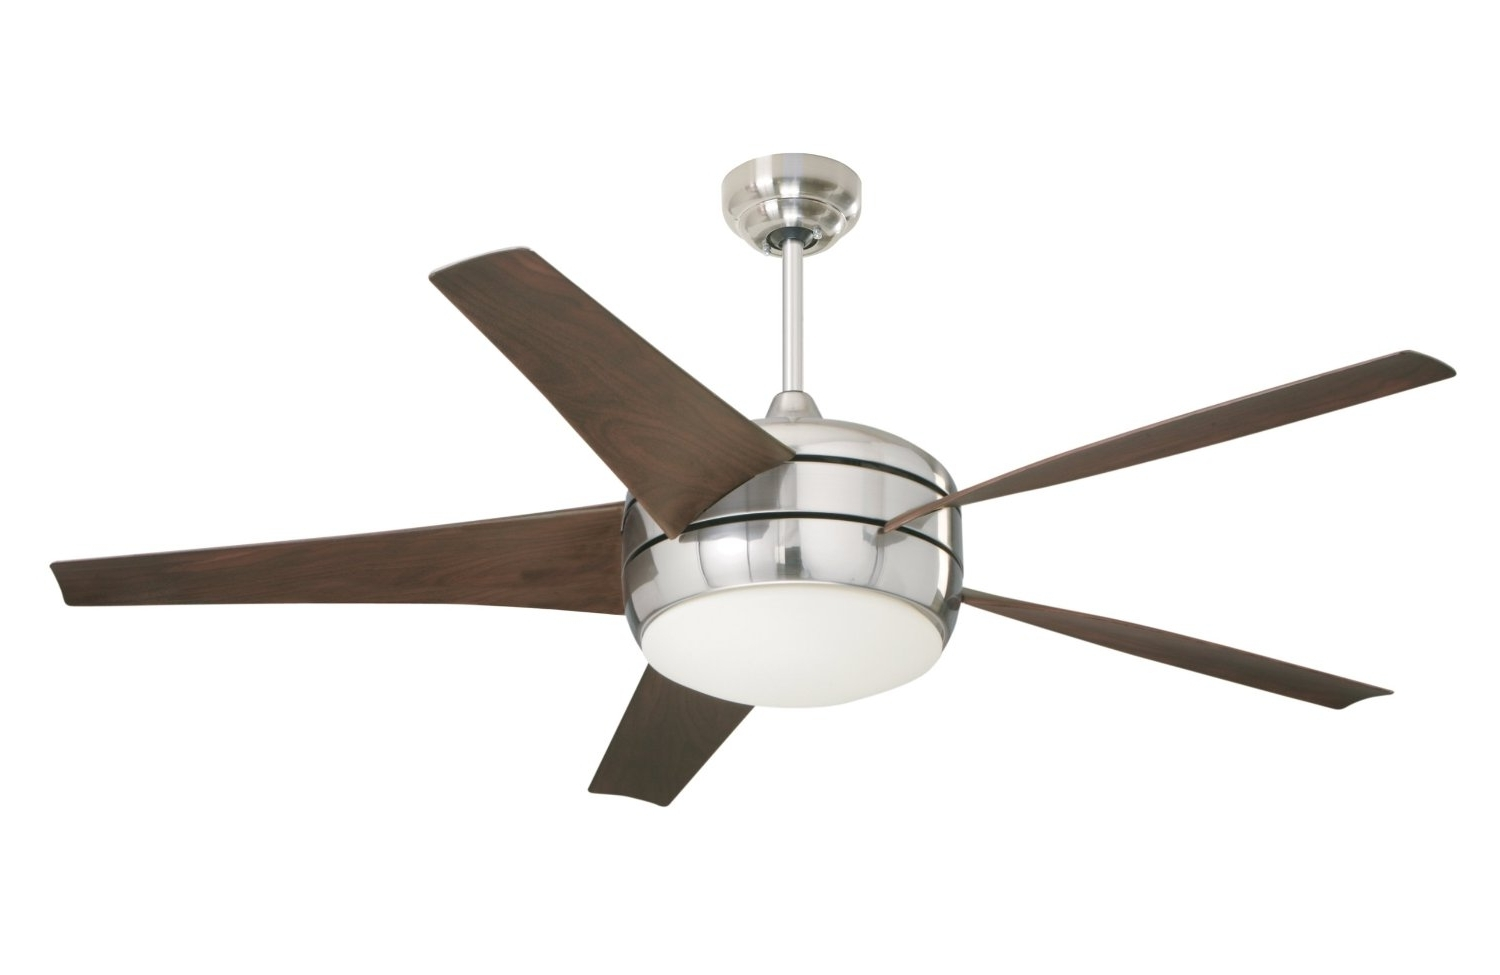 Best Ceiling Fans Reviews, Buying Guide And Comparison 2018 Pertaining To 2019 Emerson Outdoor Ceiling Fans With Lights (View 1 of 20)